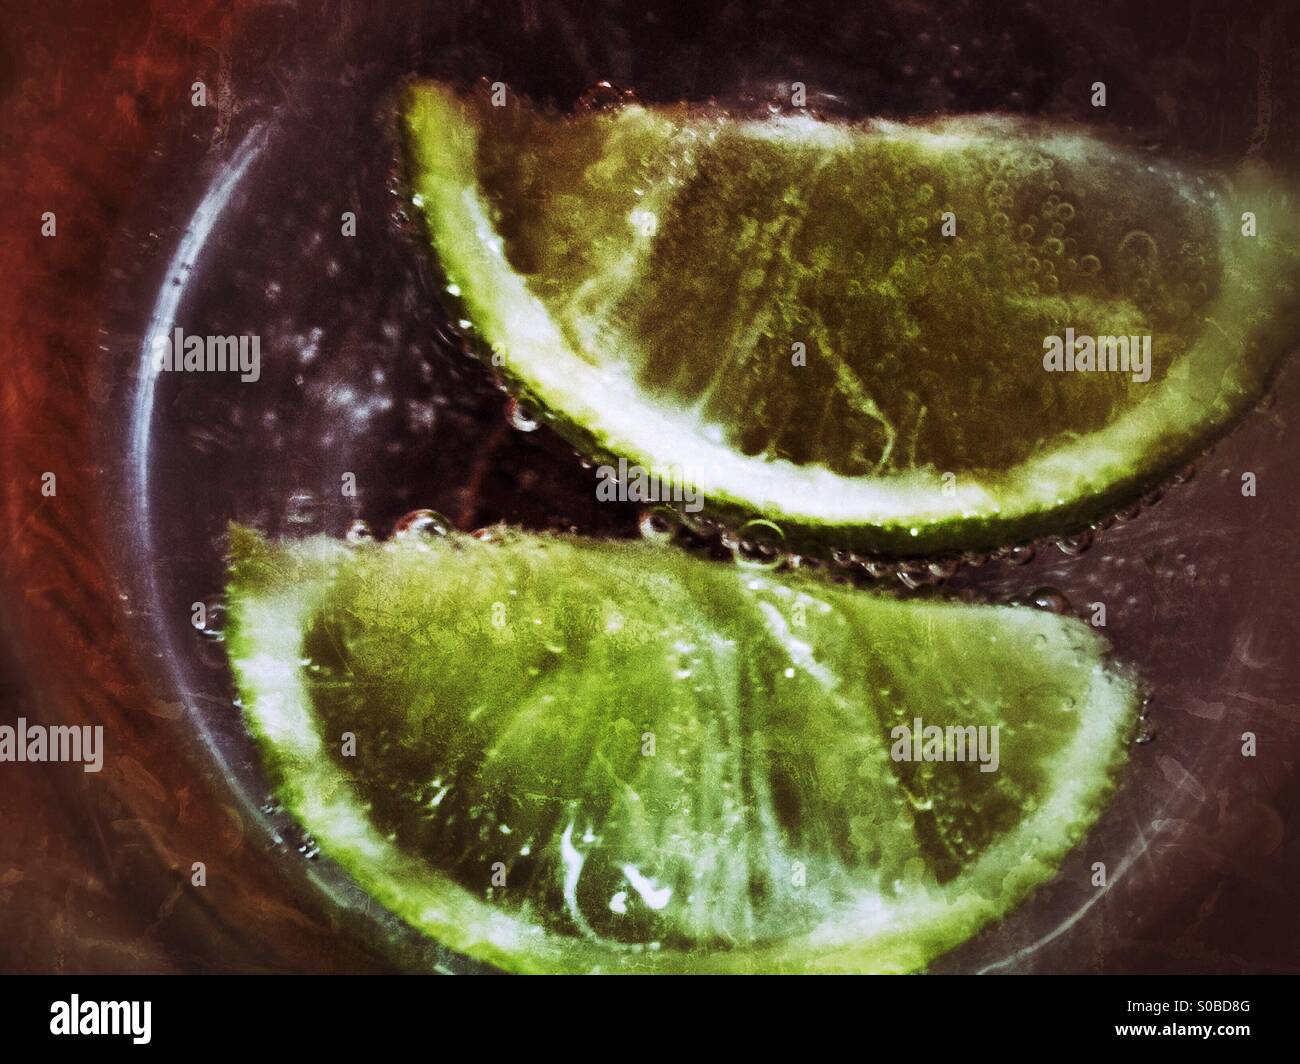 Lime slices in a glass Stock Photo